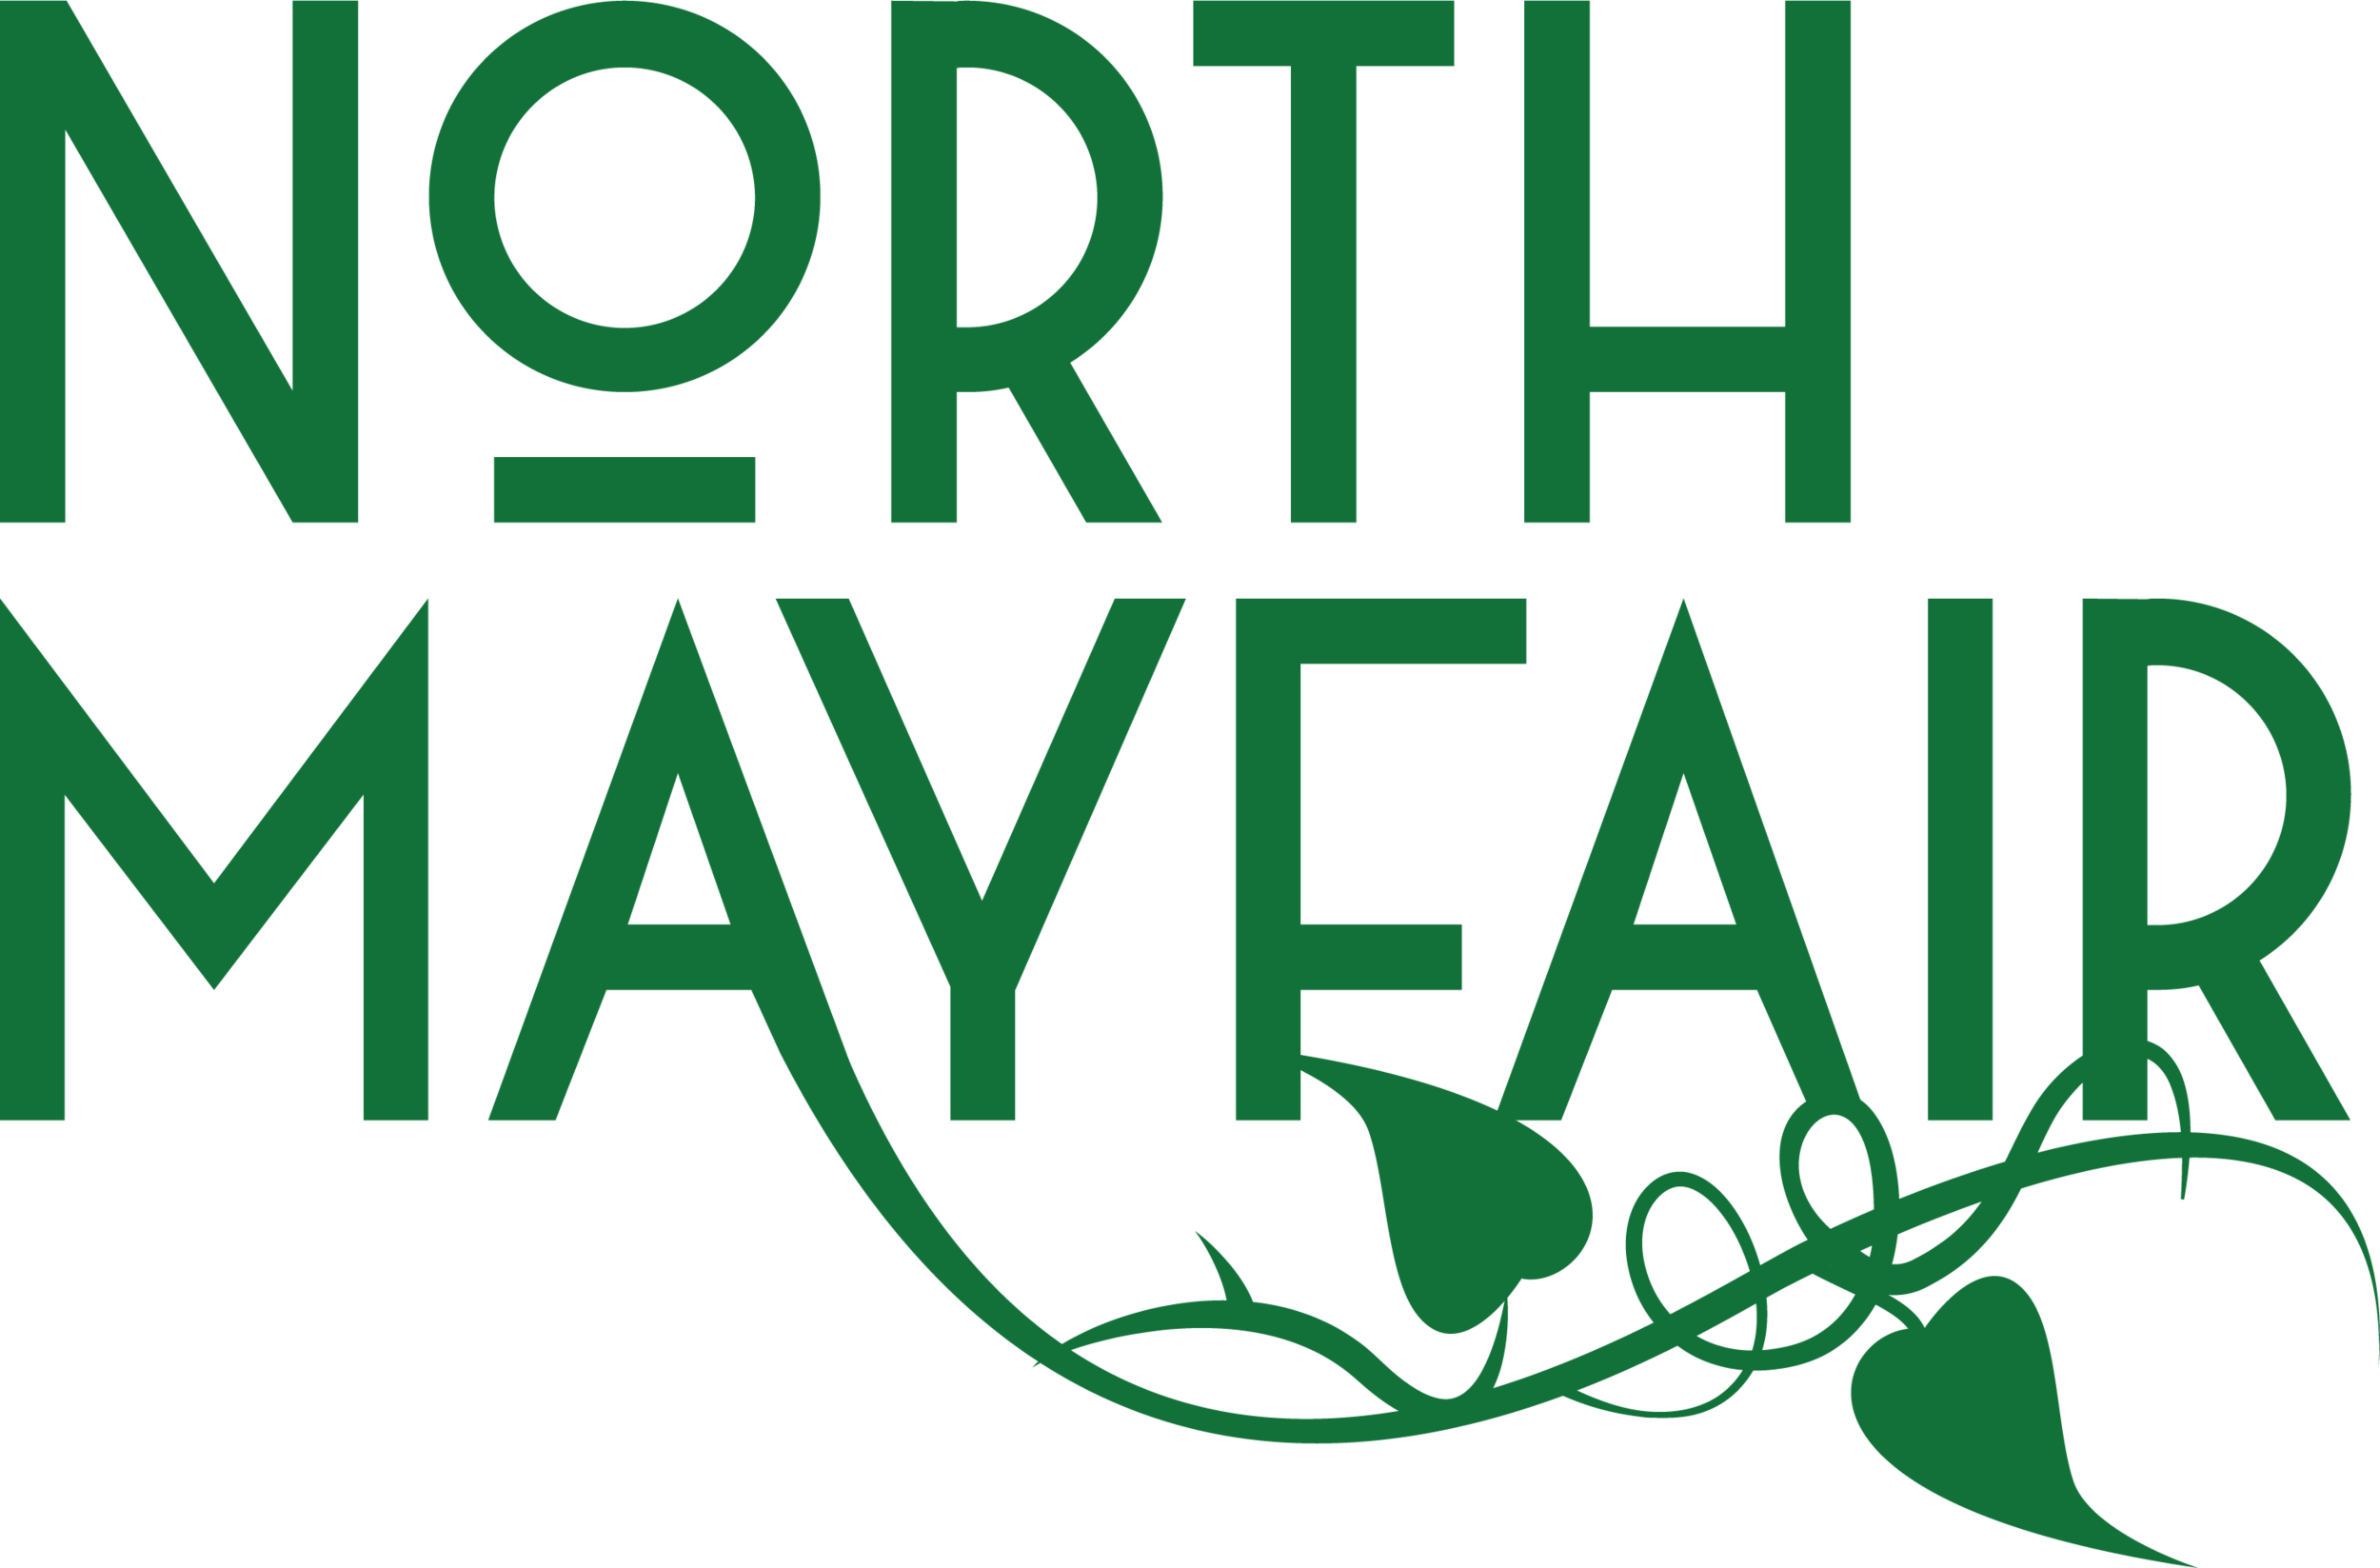 NorthMayfair_ImprovementAssoc_Logo.png